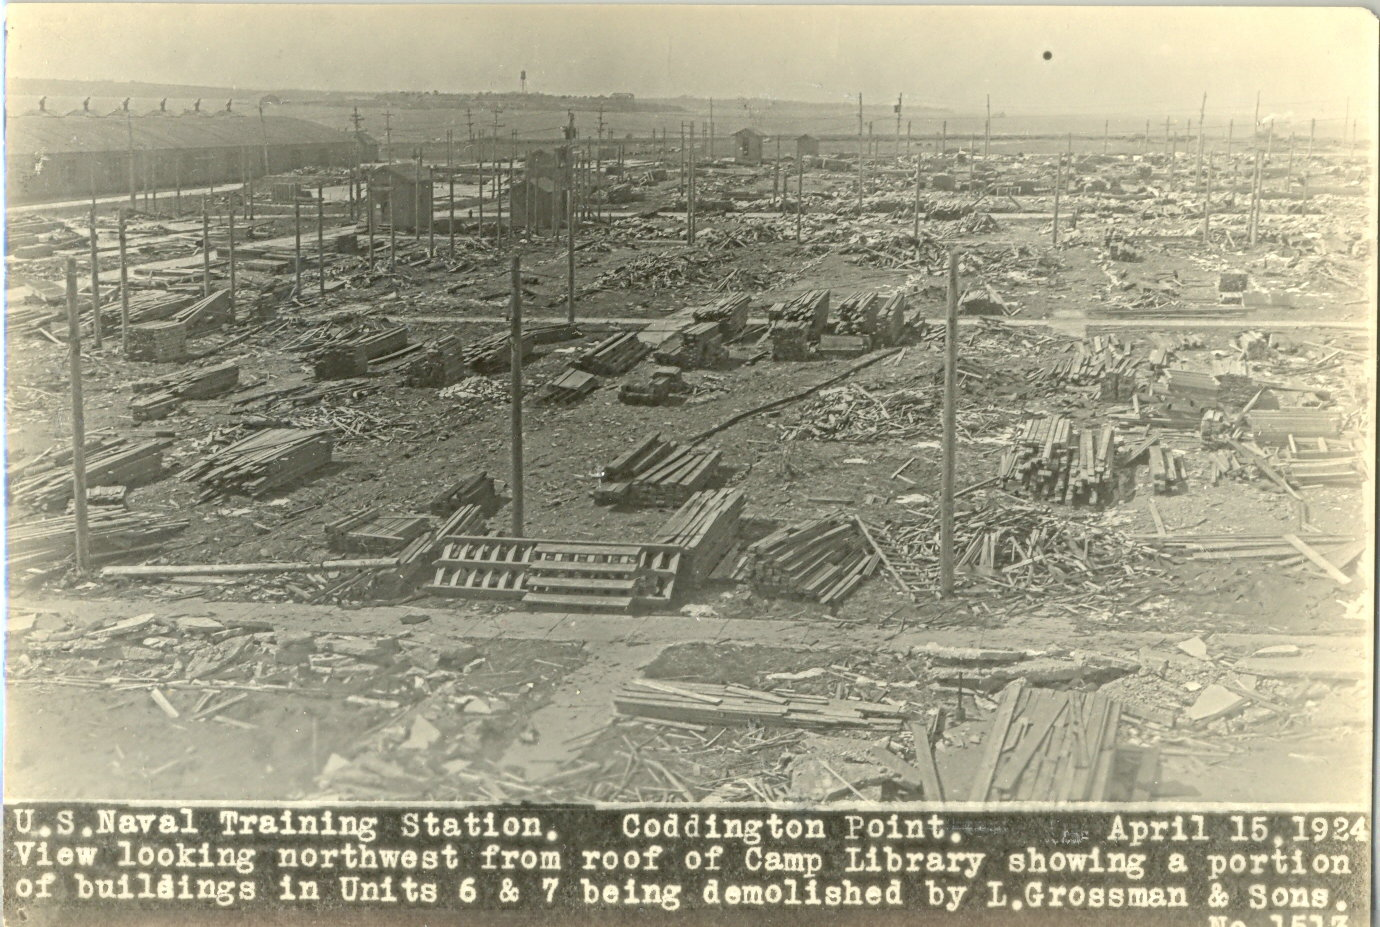 After sitting unused for many years, the war emergency camp constructed in 1917-1918 on Coddington Point was declared excess, resulting in over 200 buildings being dismantled and sold at auction (Naval War College Museum)